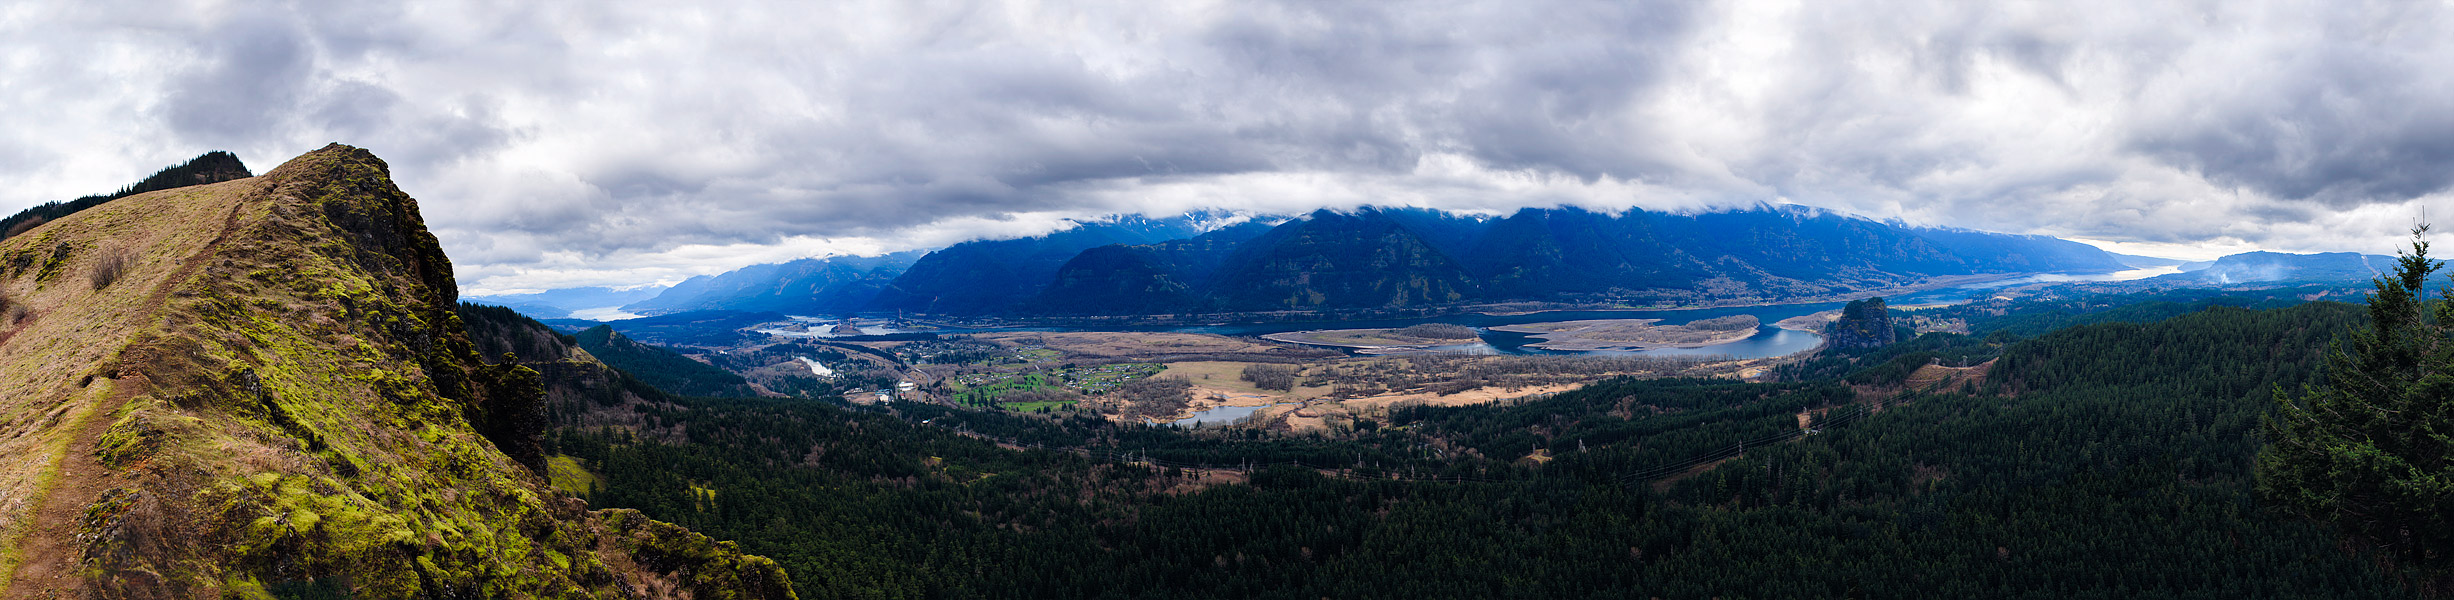 View of Beacon Rock and the Columbia River Gorge